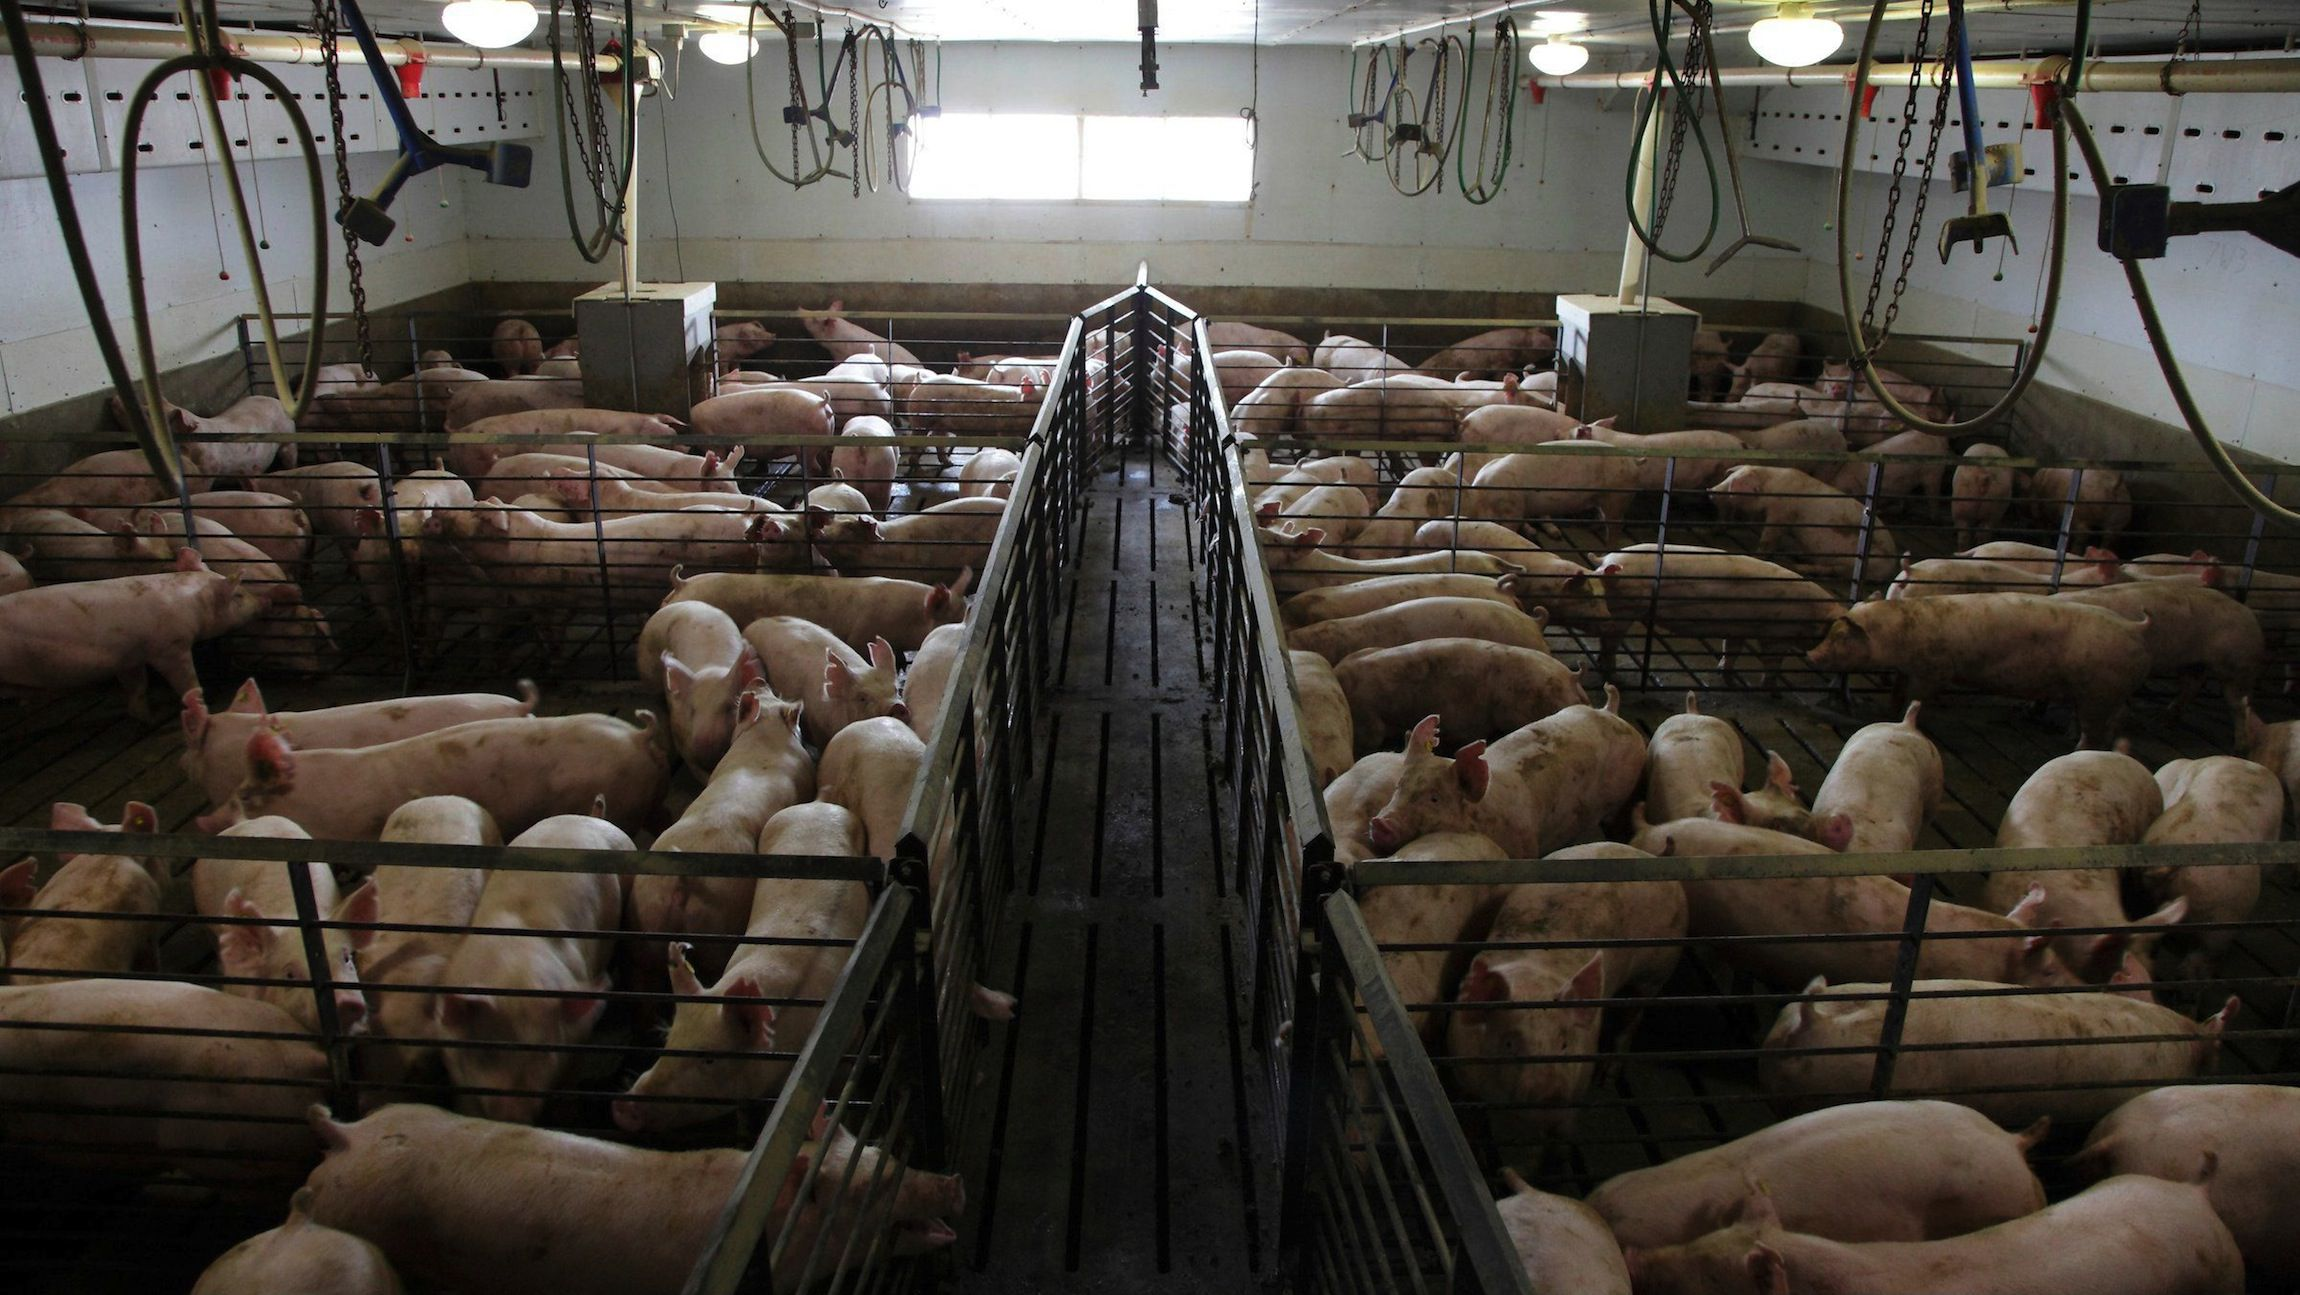 It is cheaper for hog producers like WH Group to raise hogs in the United States and ship them back to China.